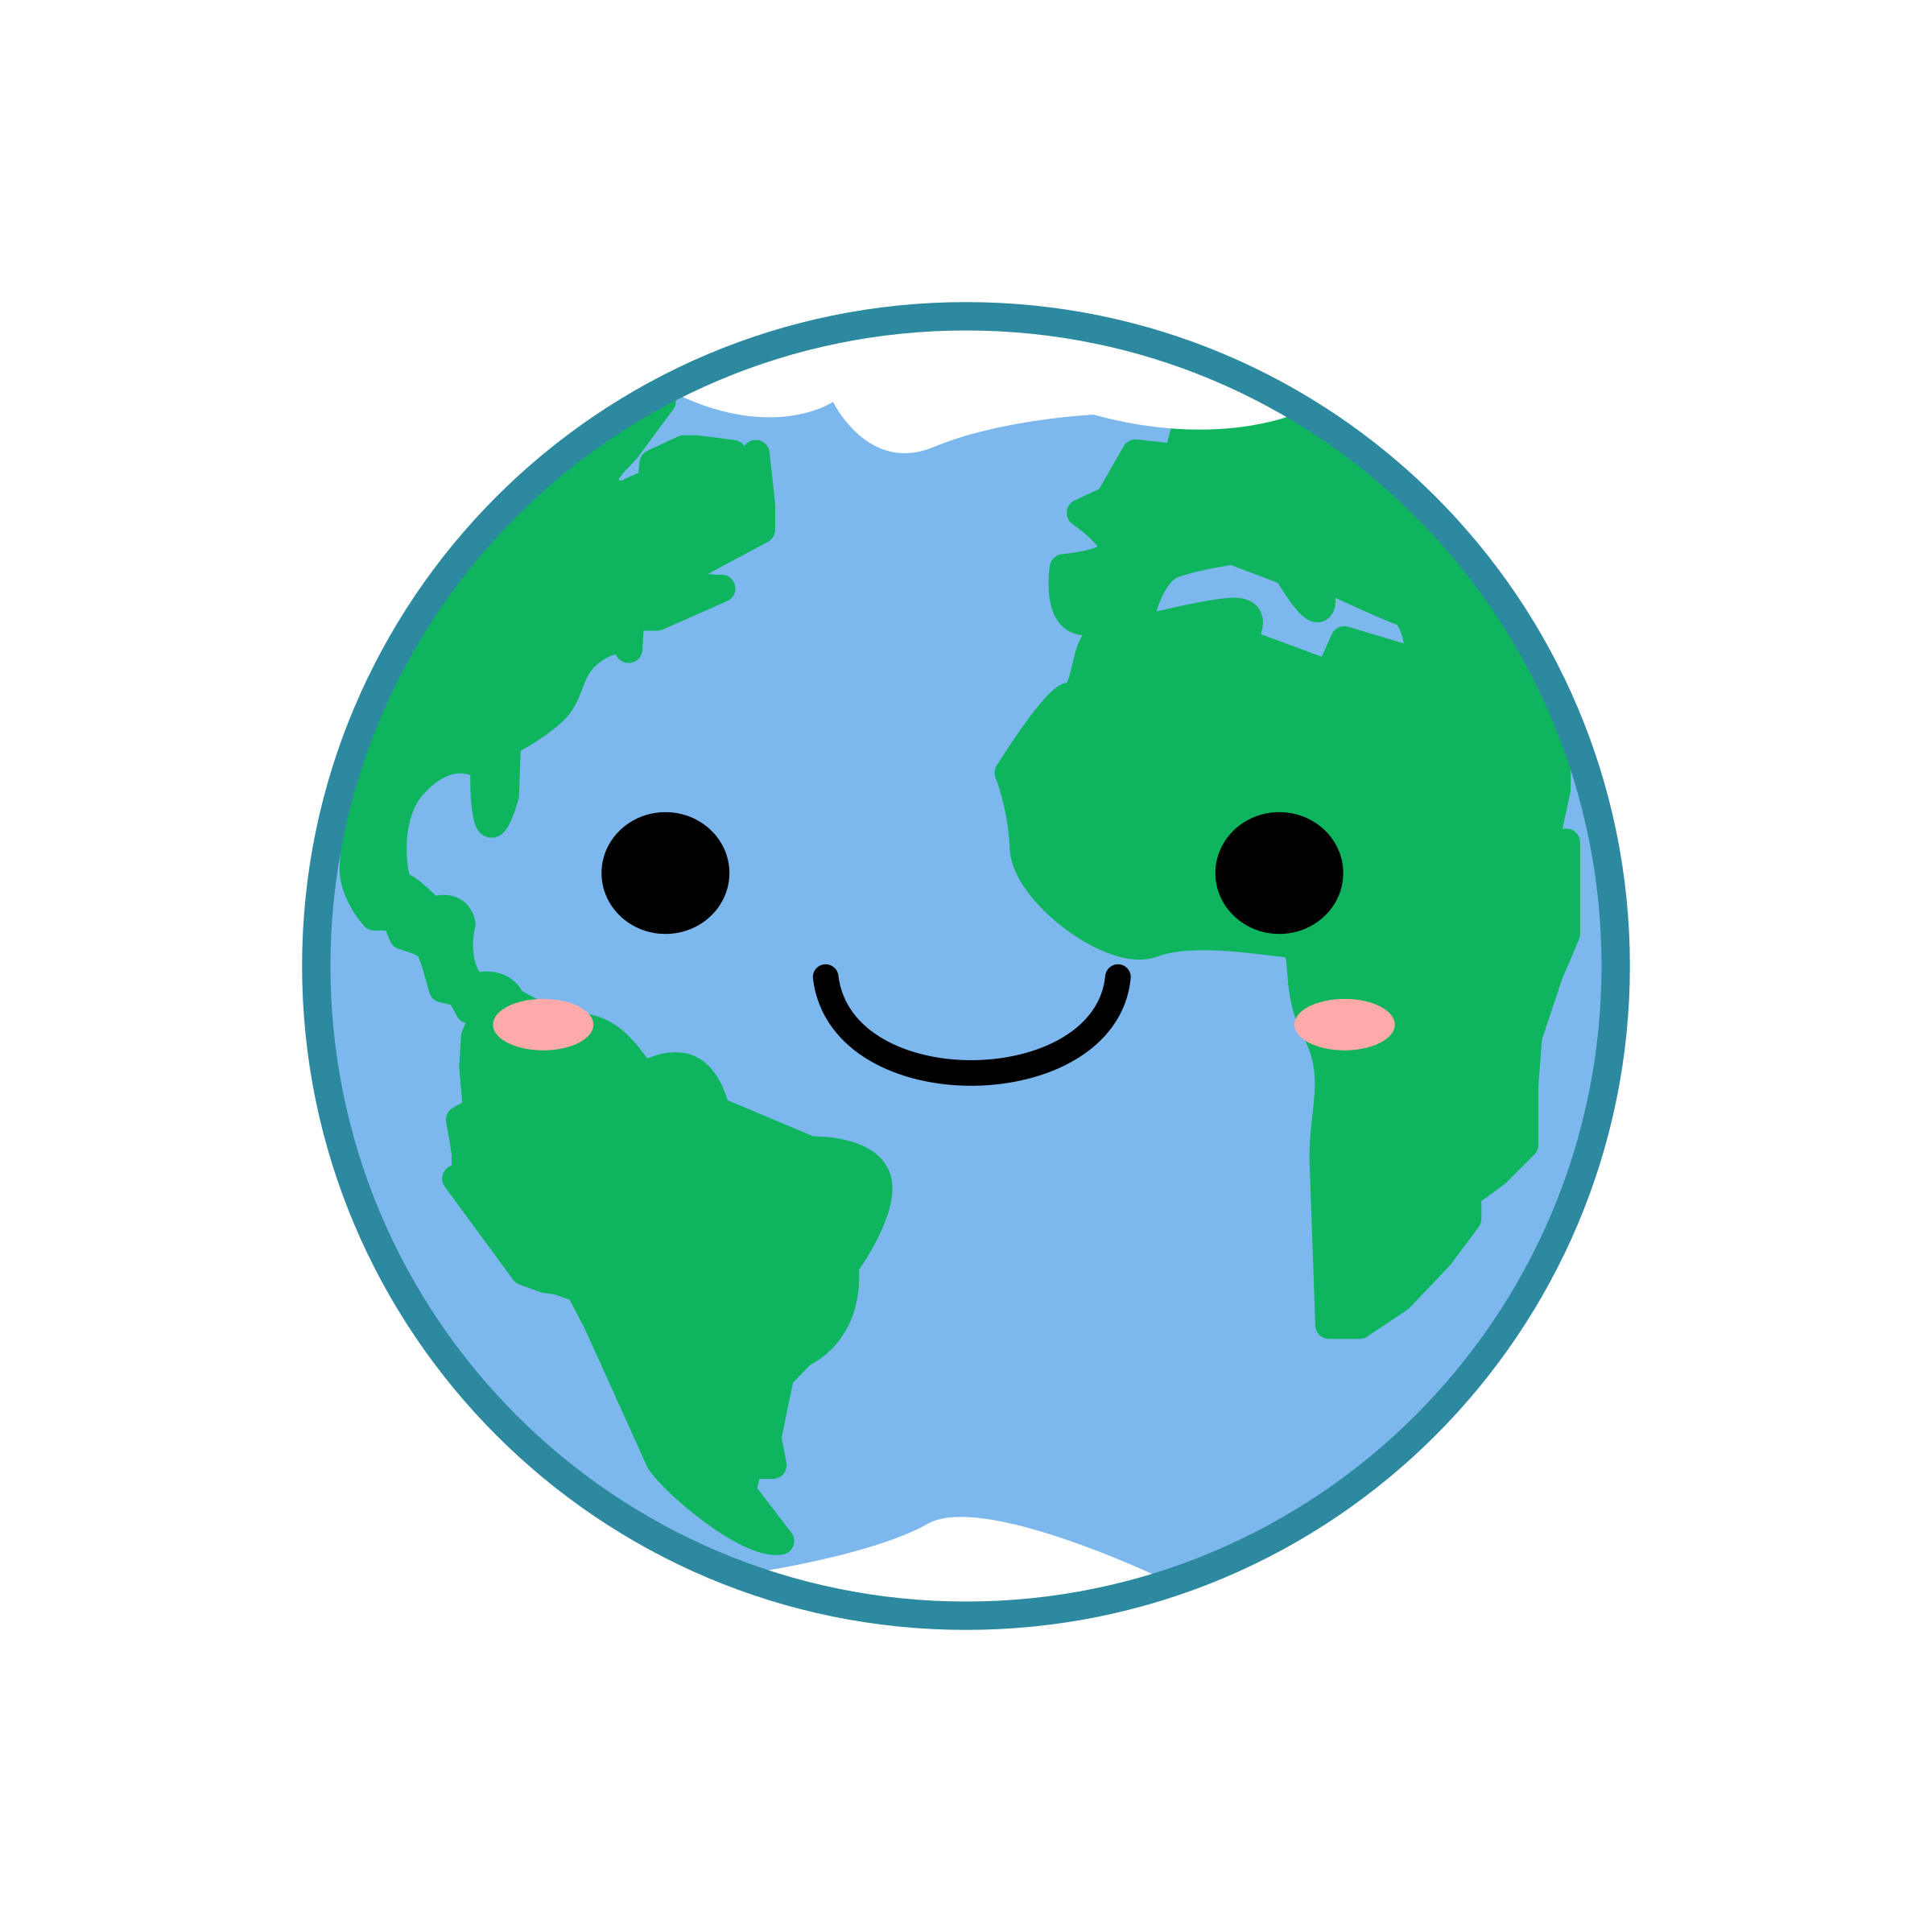 World image free jokingart. Planets clipart cute